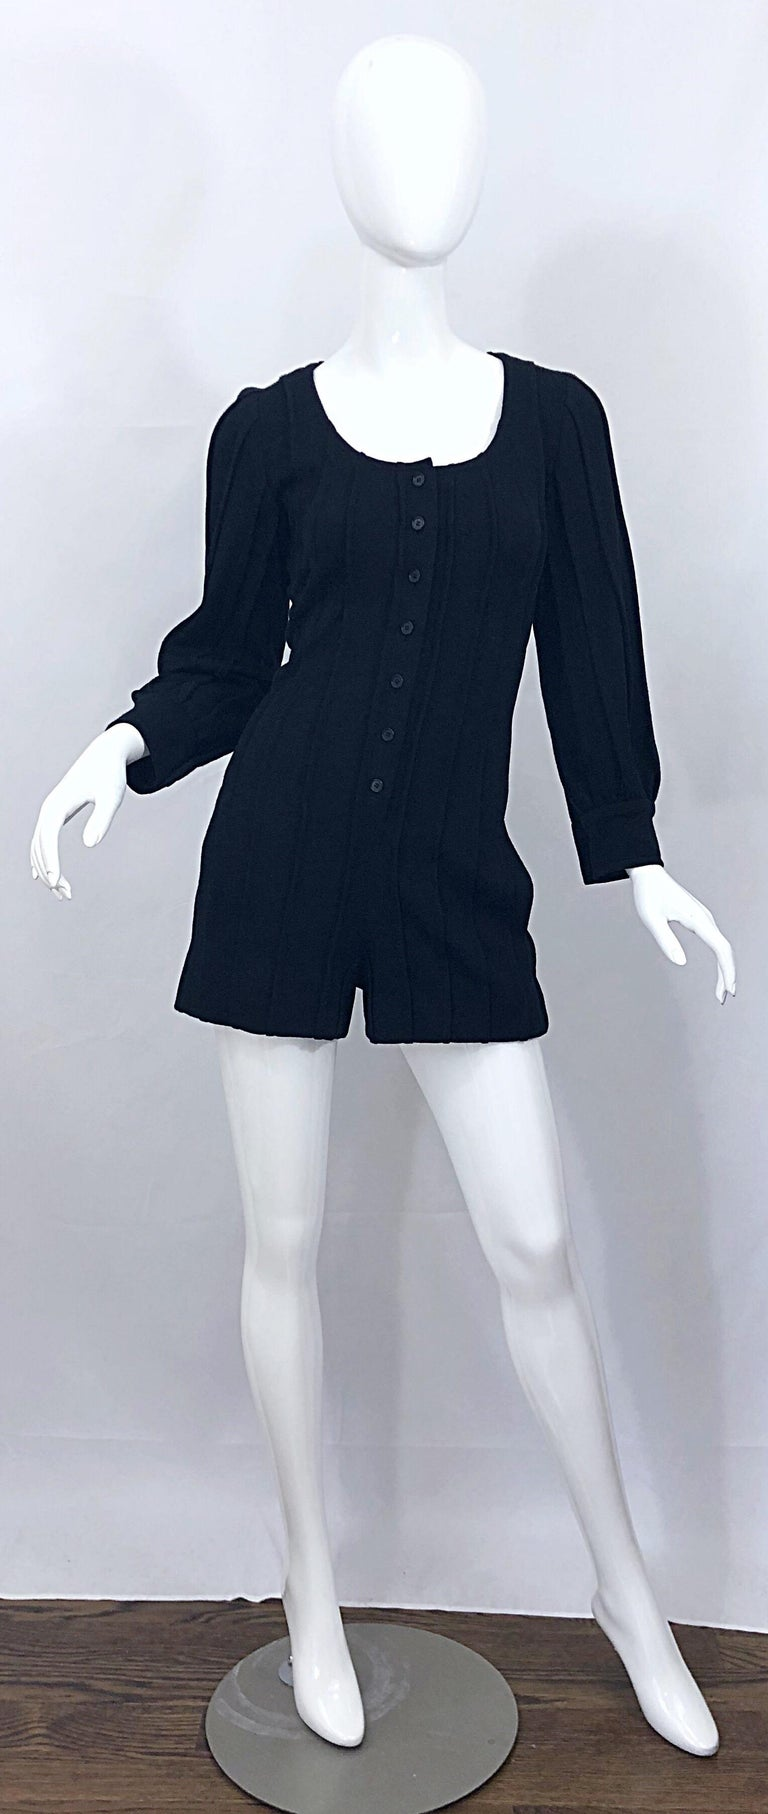 Chic vintage GIVENCHY HAUTE COUTURE black wool long sleeve one piece romper jumpsuit! Features soft black ribbed virgin wool. Buttons up the front. Pockets at each side of the hips. Buttons at each sleeve cuff, which can also be rolled up. Can